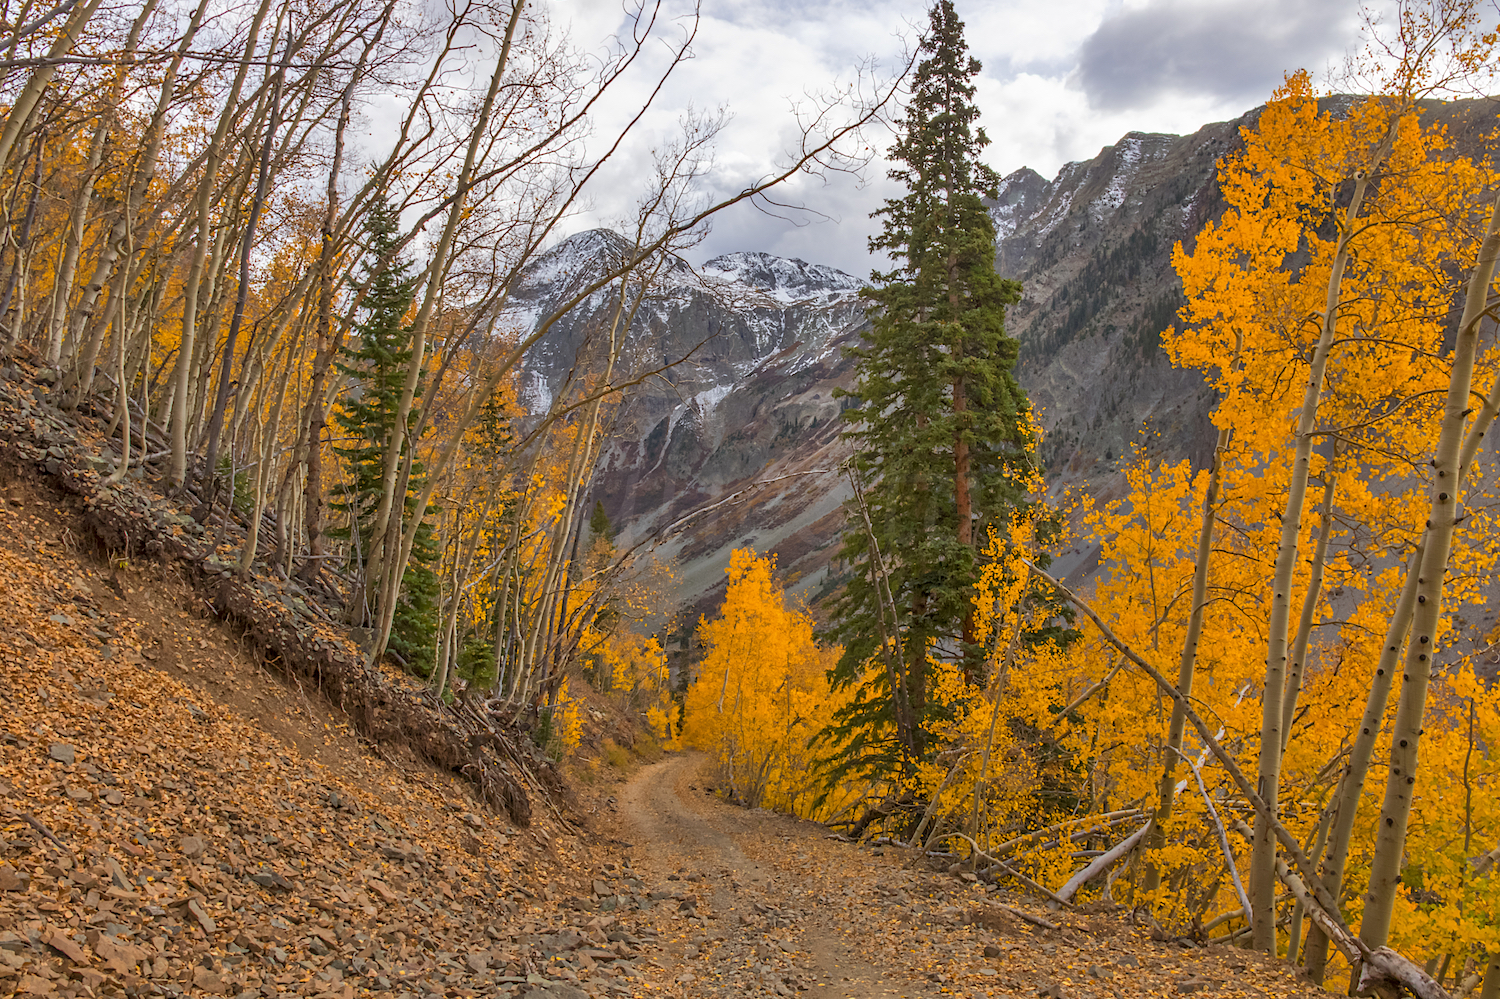 Road to Little Giant Basin, Image # 9005